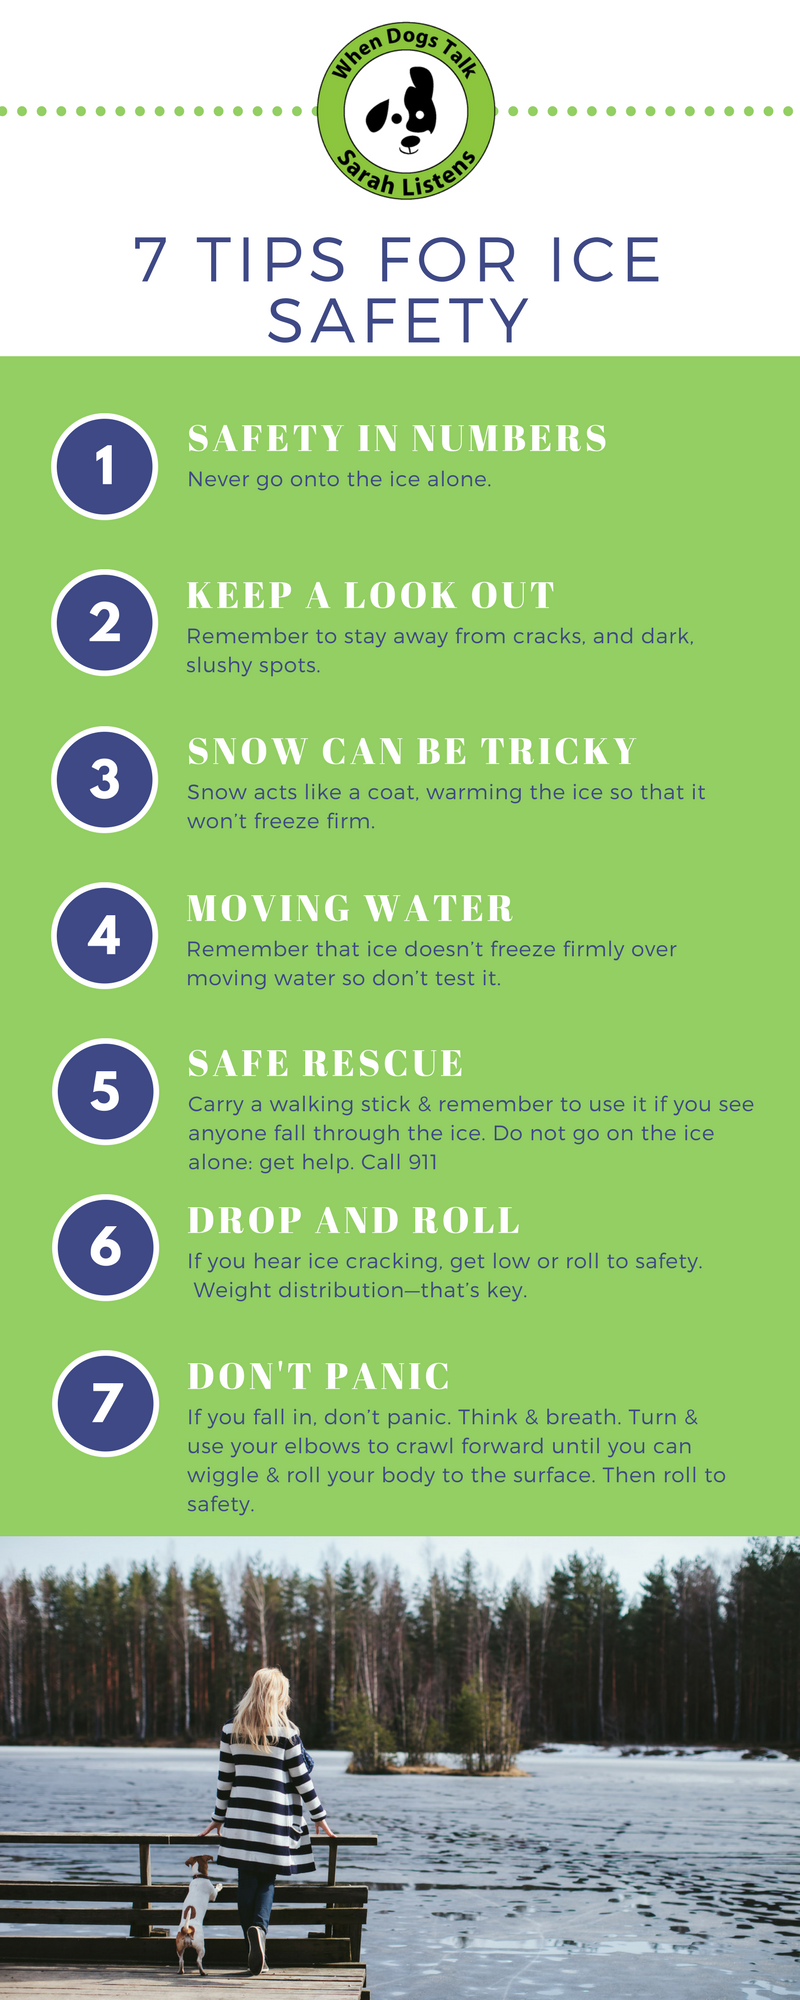 TIPS FOR ICE SAFETY.png